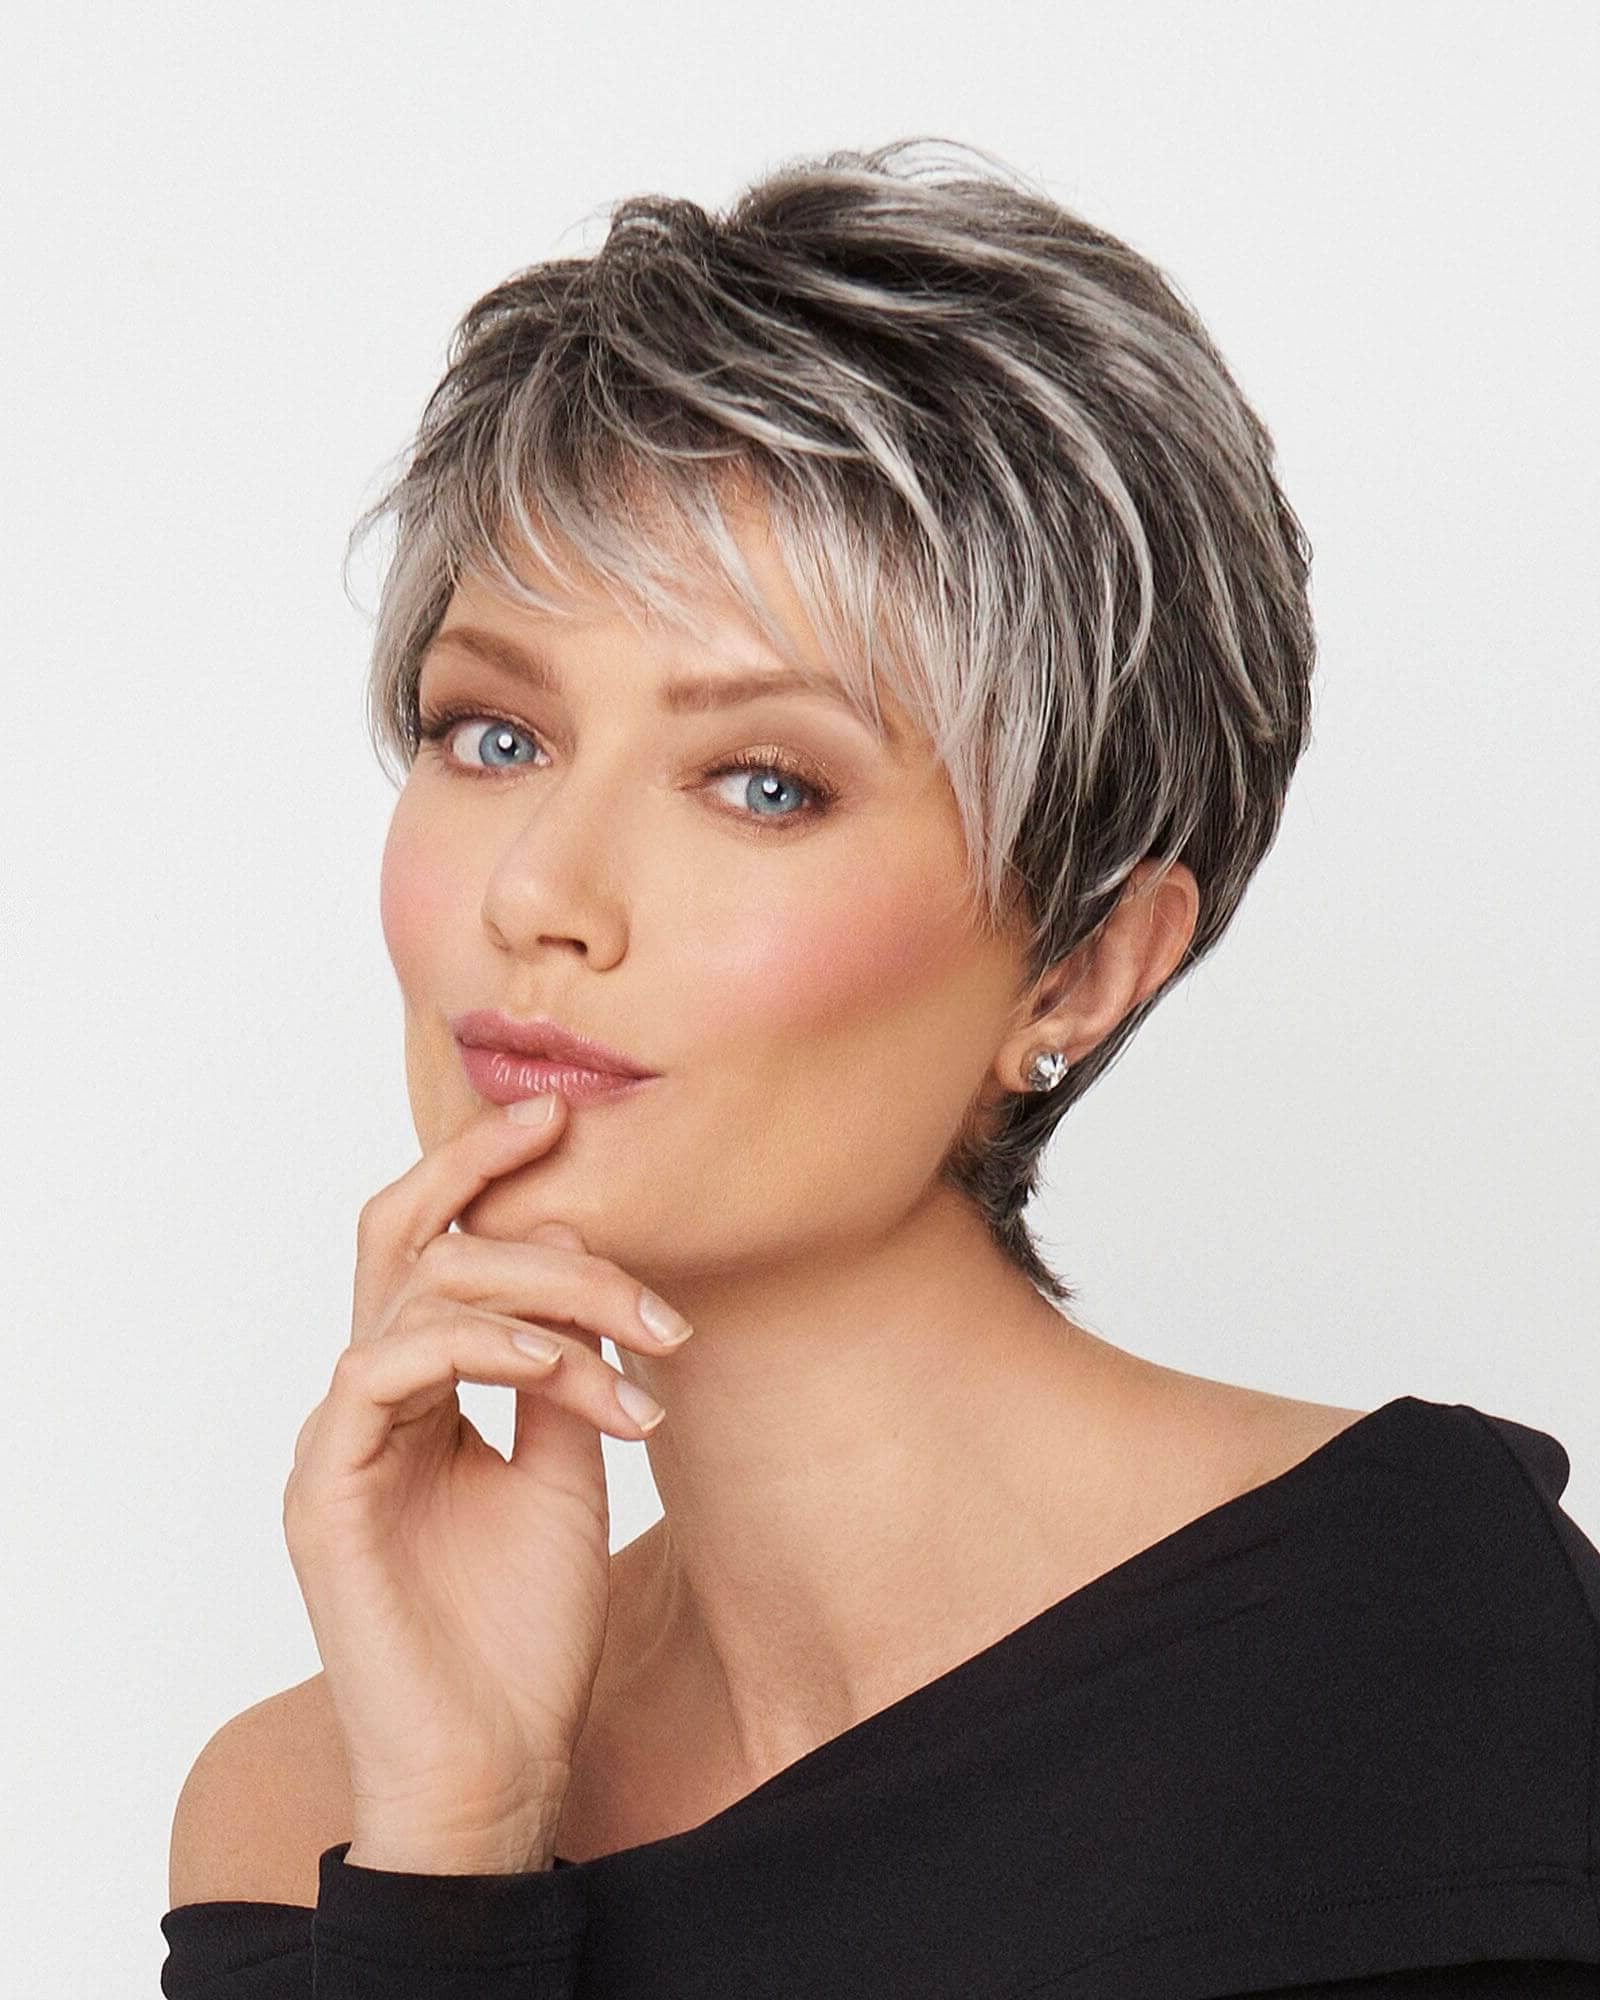 50 Pixie Haircuts You'll See Trending In 2018 With Regard To Short Haircuts For Glasses Wearer (View 22 of 25)